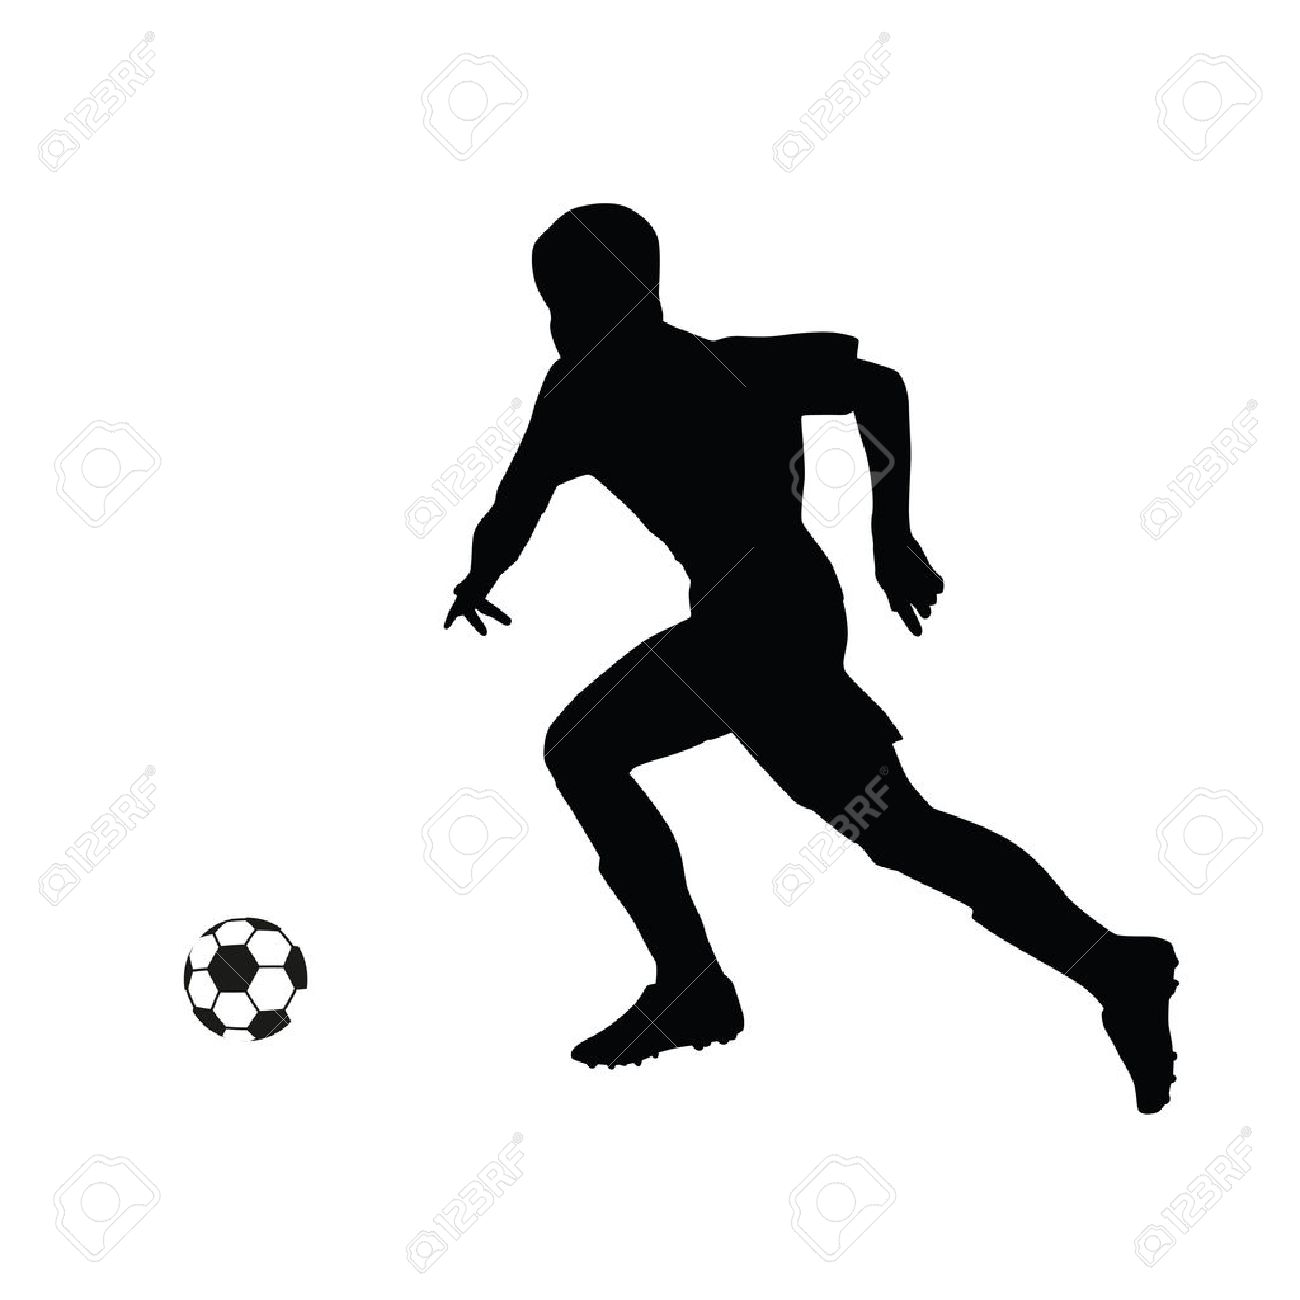 Running Soccer Player Vector Silhouette Footballer Running For